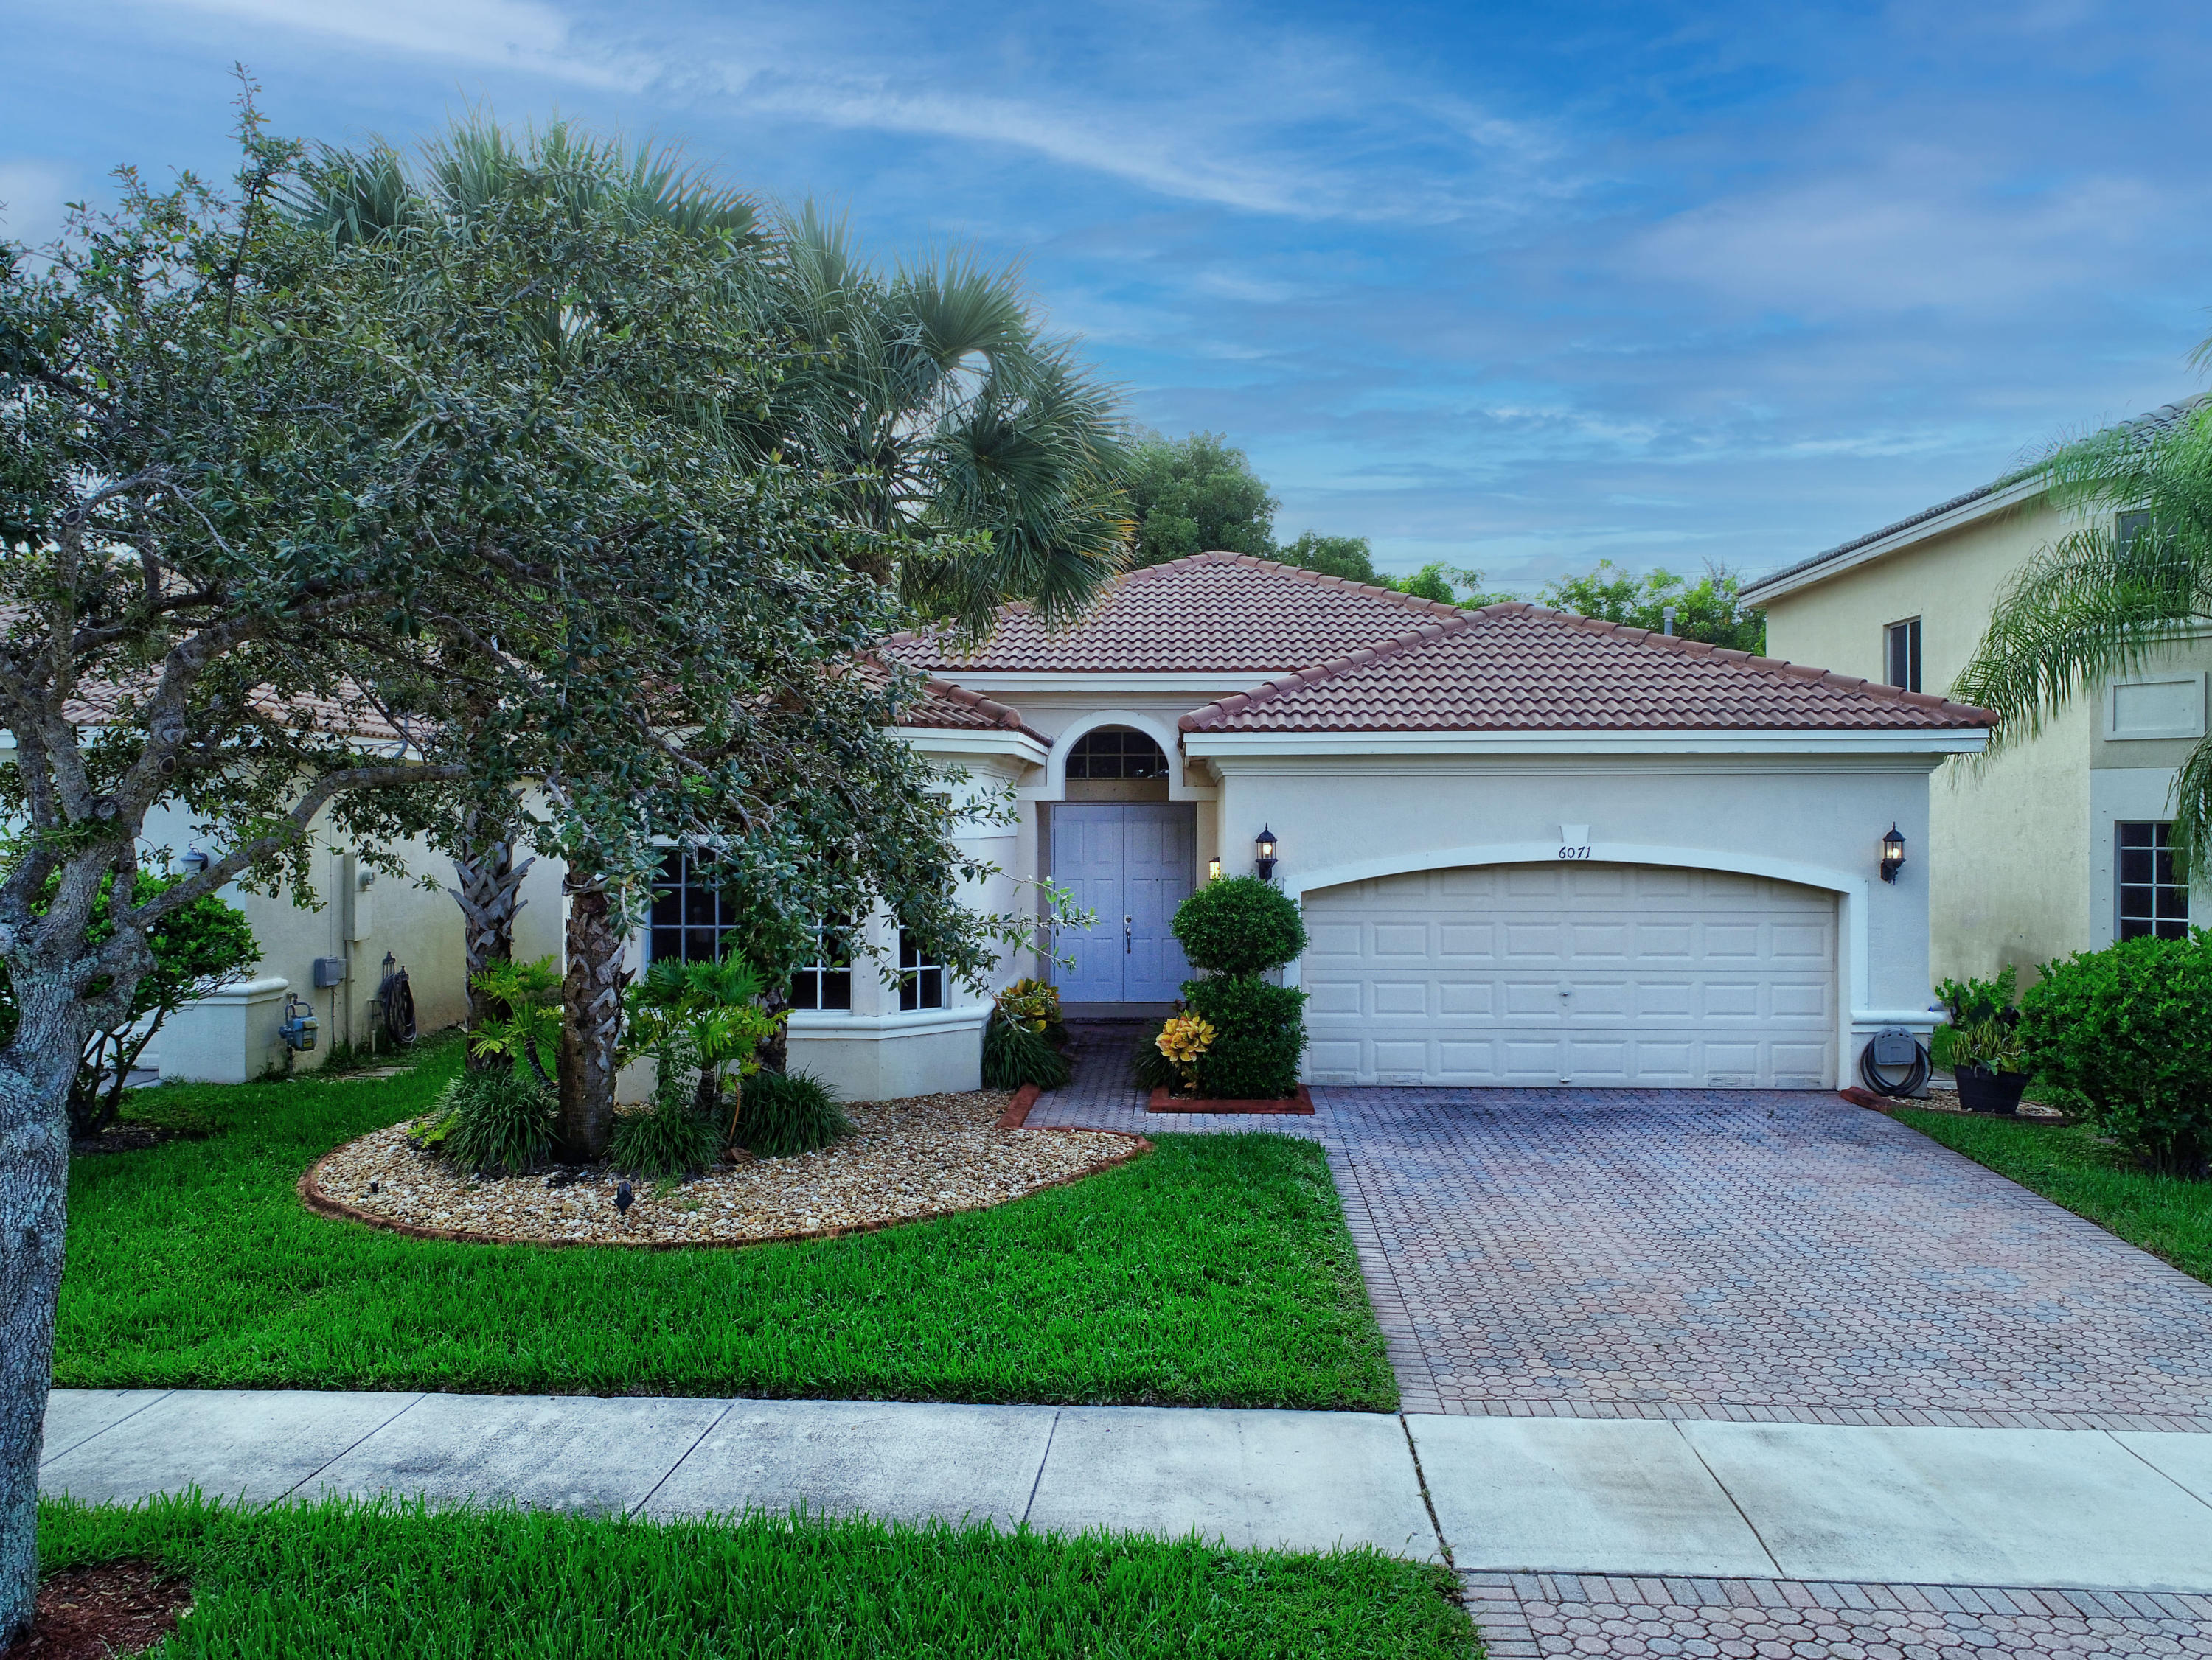 Home for sale in Laguna Isles Fort Lauderdale Florida